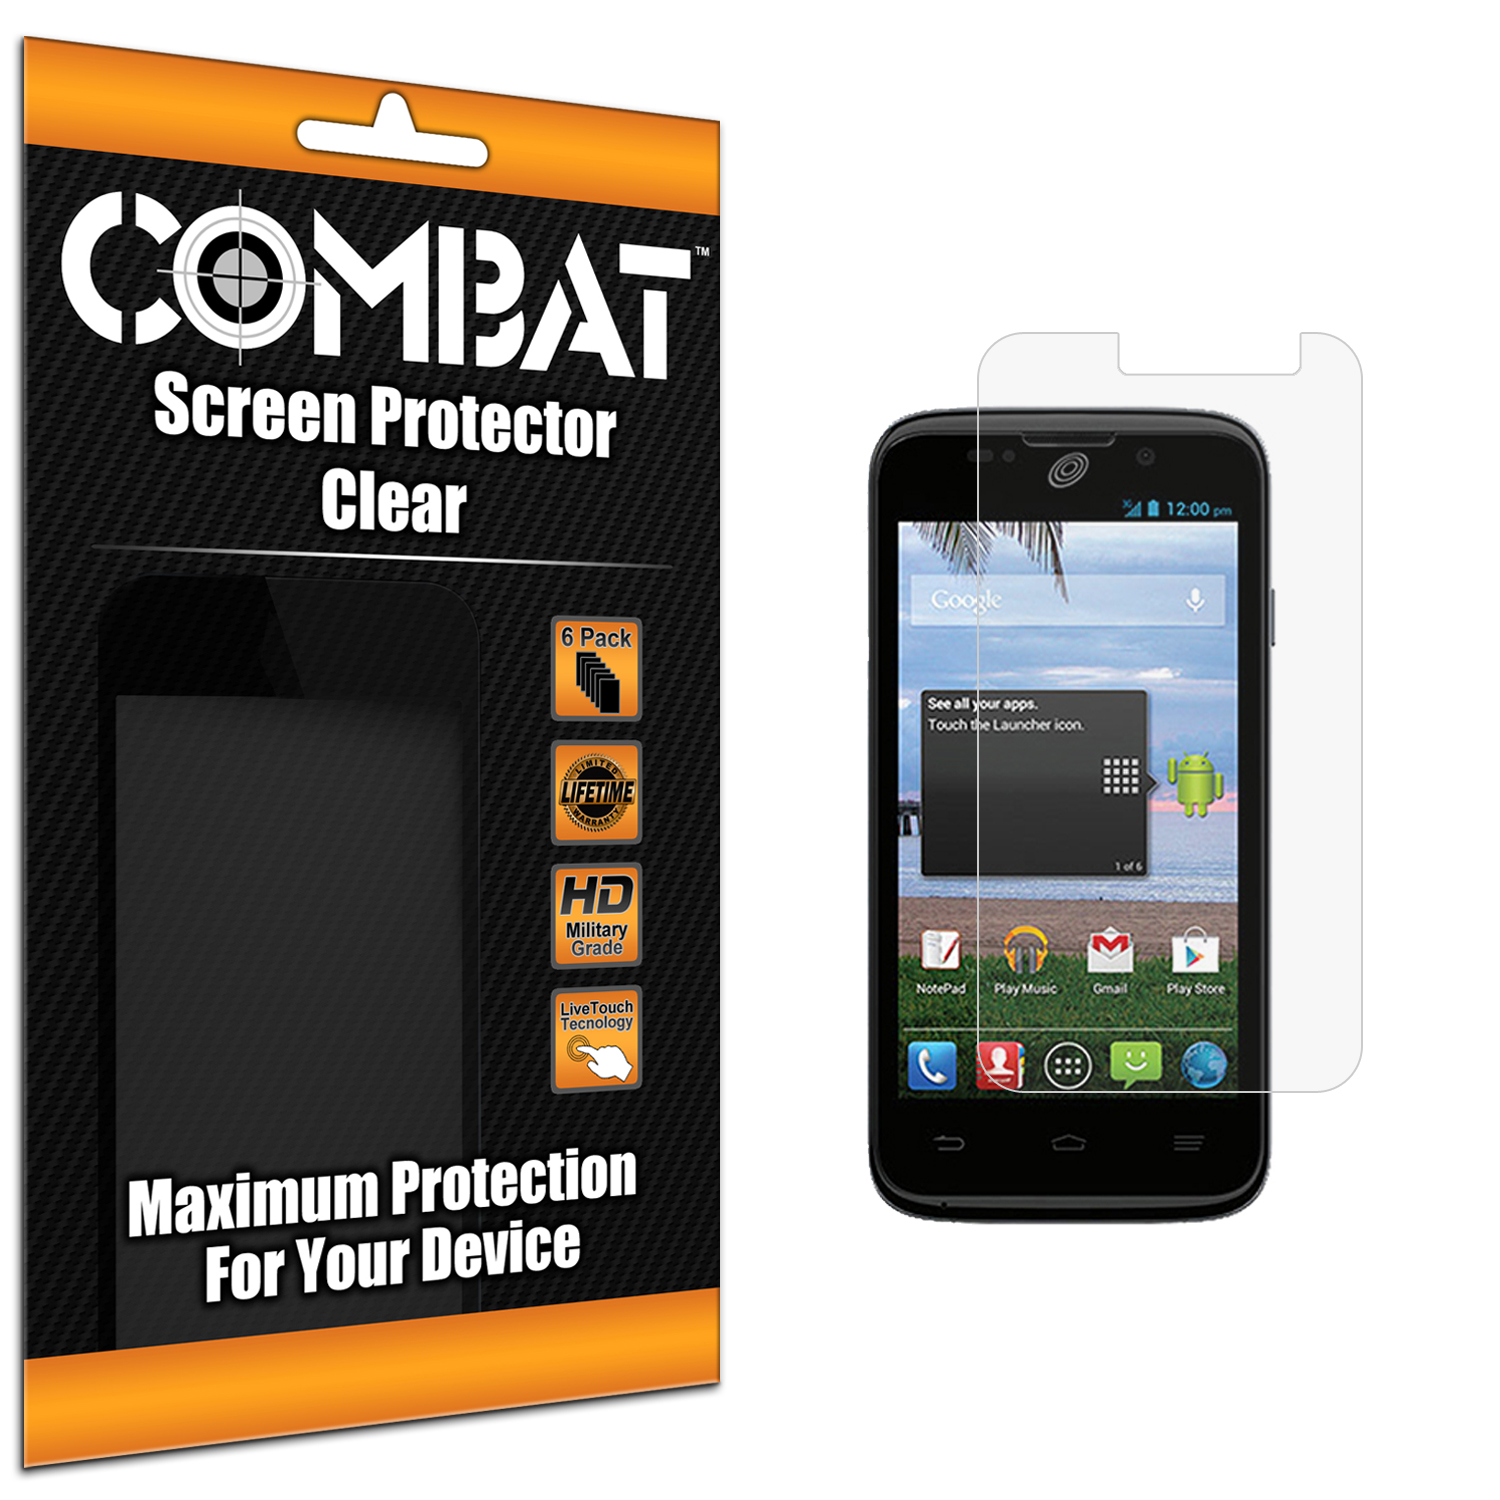 Lenovo S860 Combat 3 Pack HD Clear Screen Protector